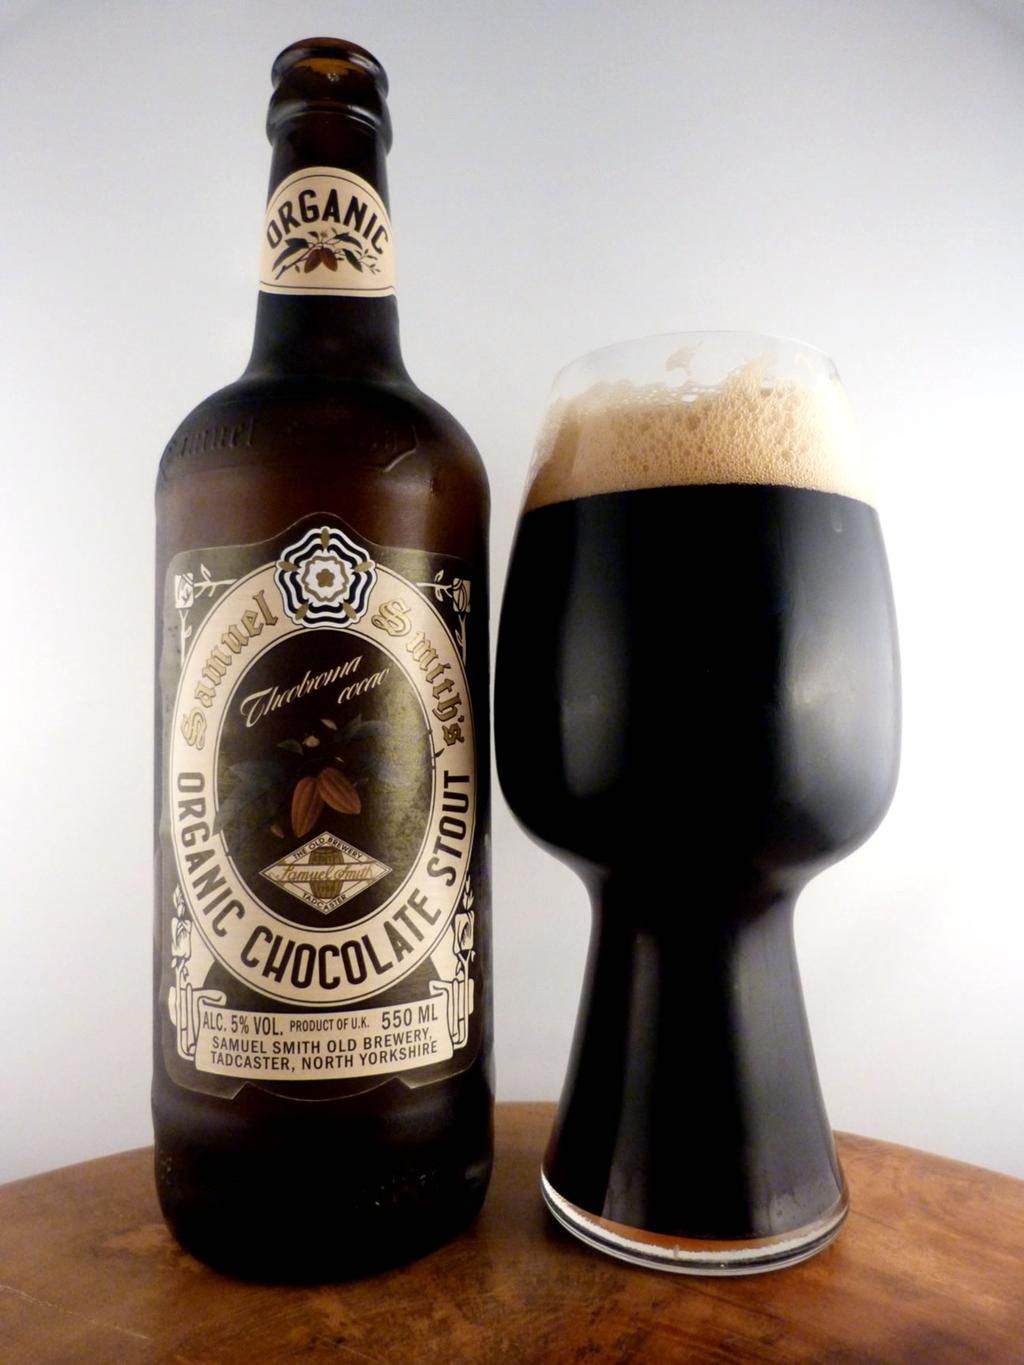 Organic Chocolate Stout goodness from @samsmithsbeer at 5.0%. An awesome #Yorkshire #beer blend of malts & chocolate!